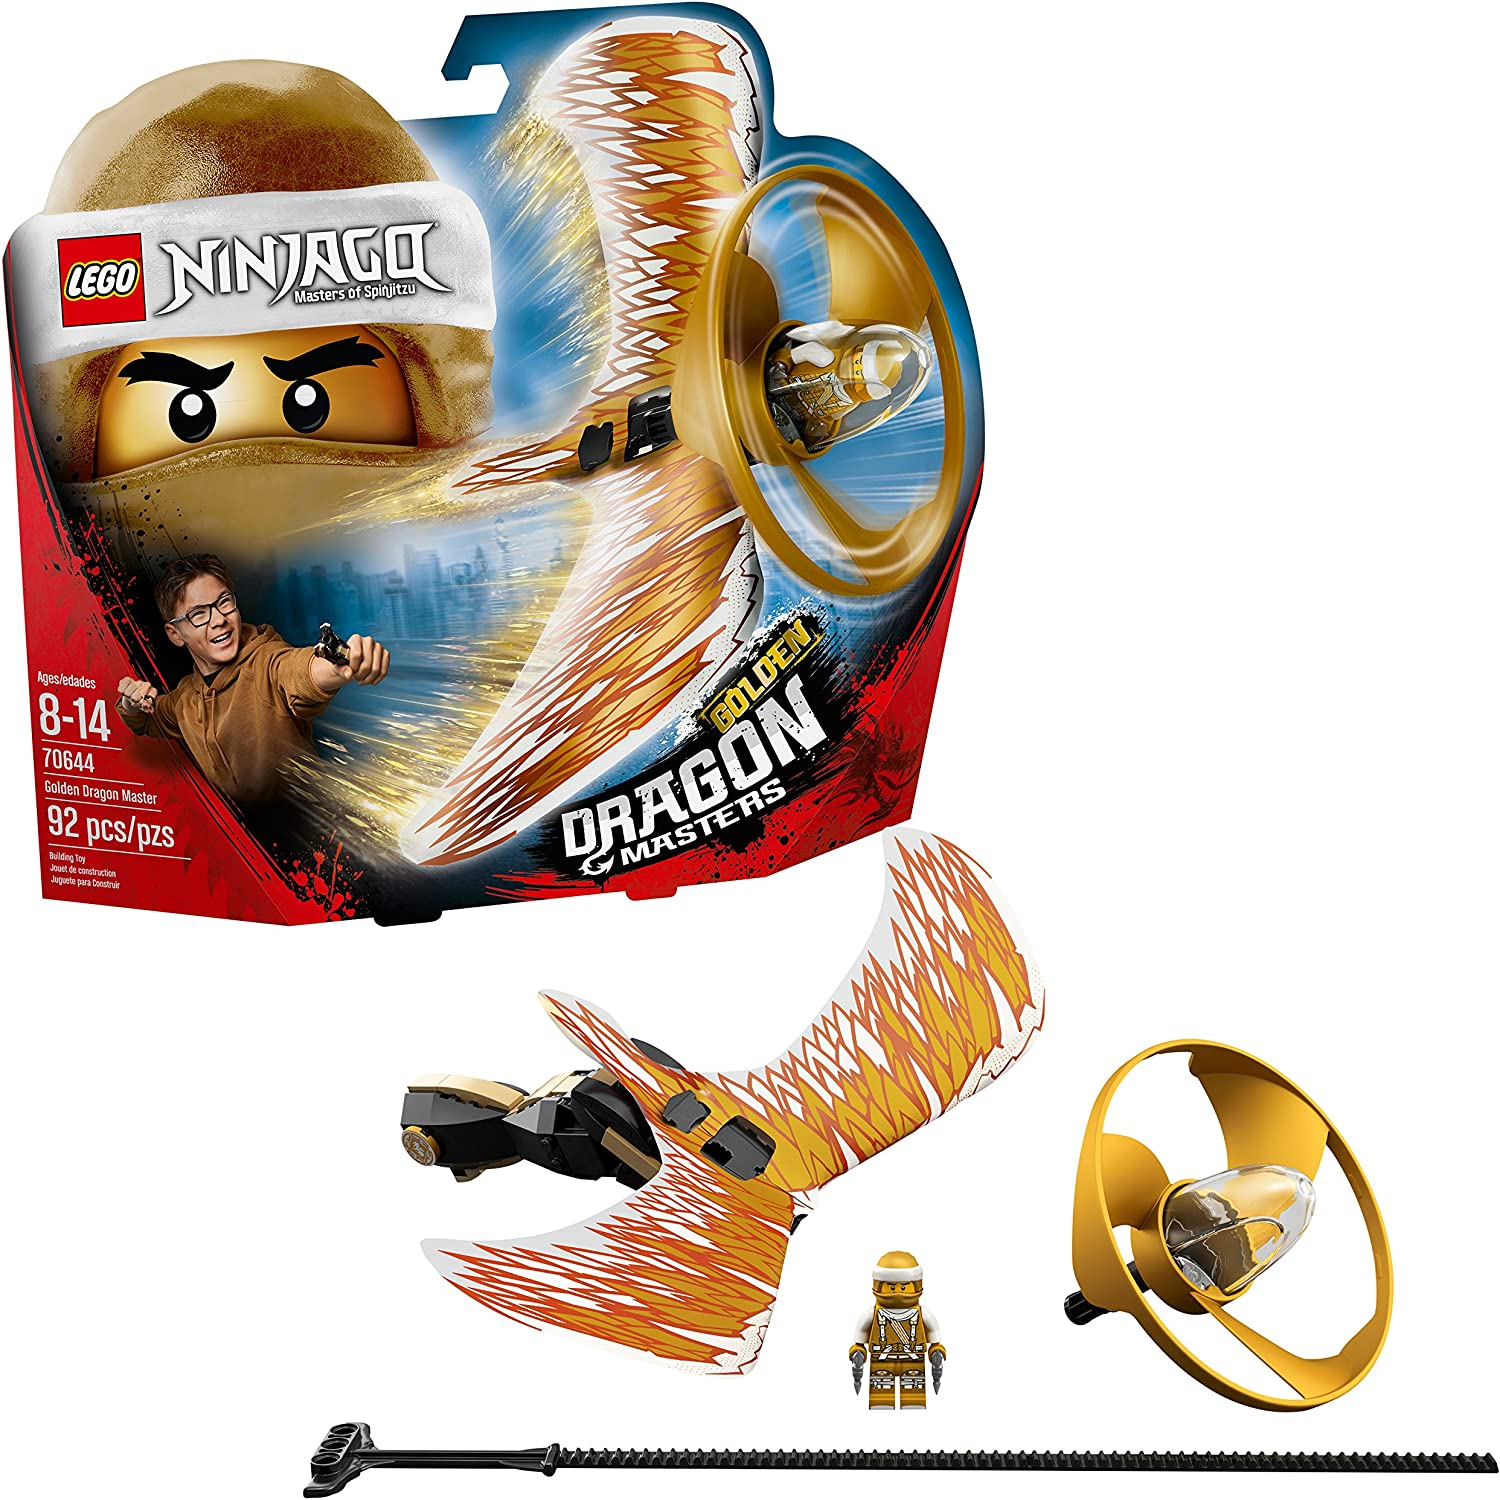 Ninjago toys golden dragon the lost golden staff of the dragon queen 38